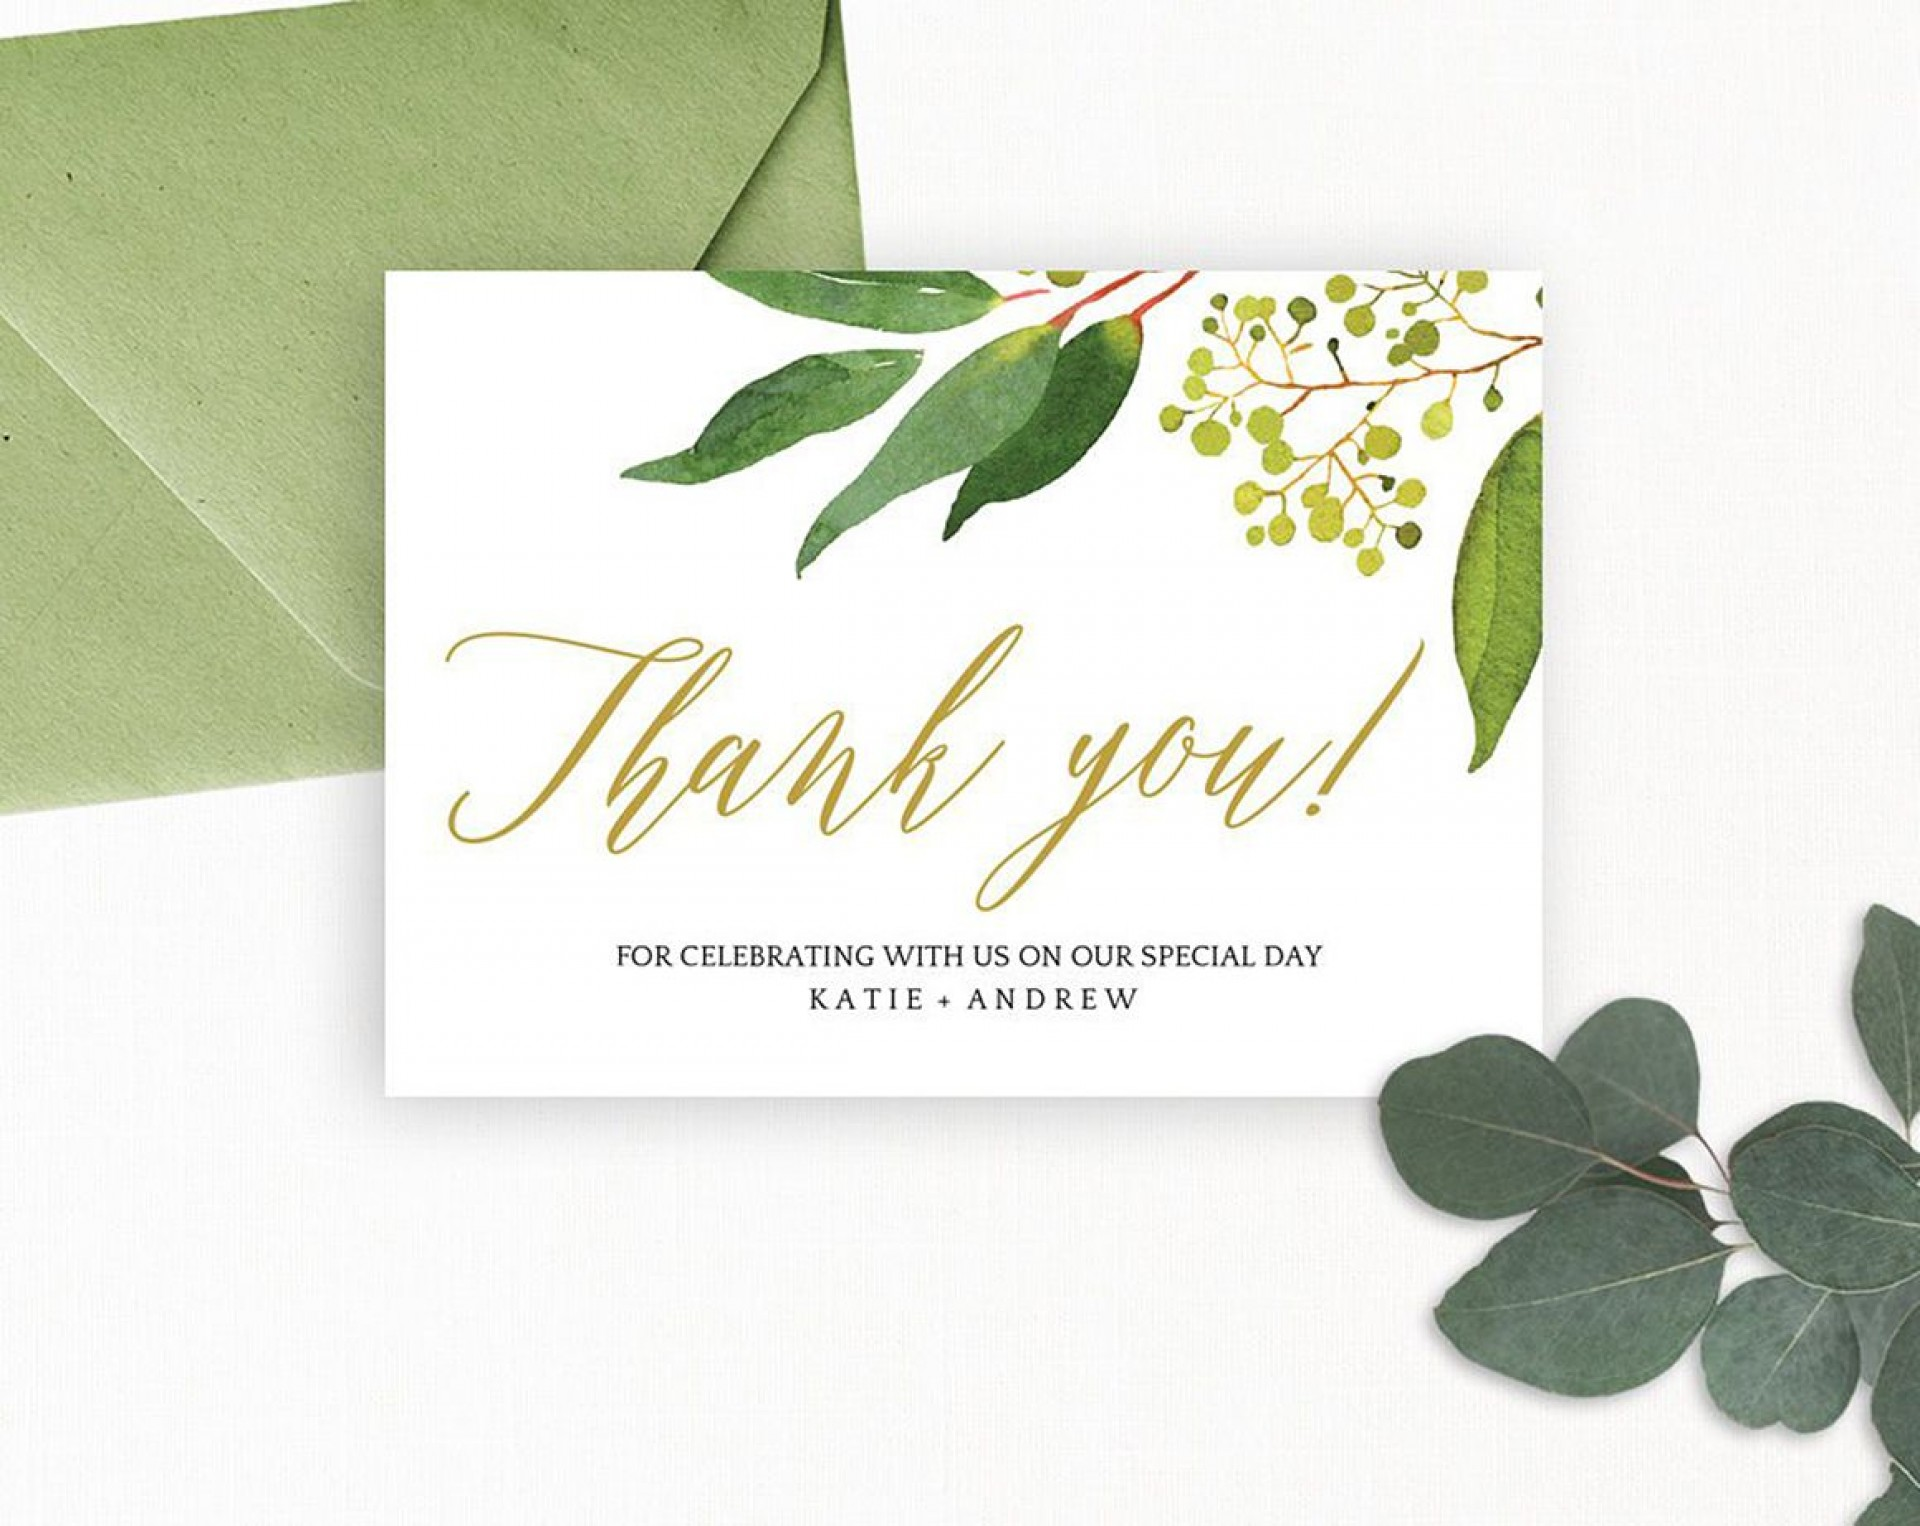 007 Unforgettable Wedding Thank You Note Template Image  Templates Shower Card Etsy Bridal Format1920